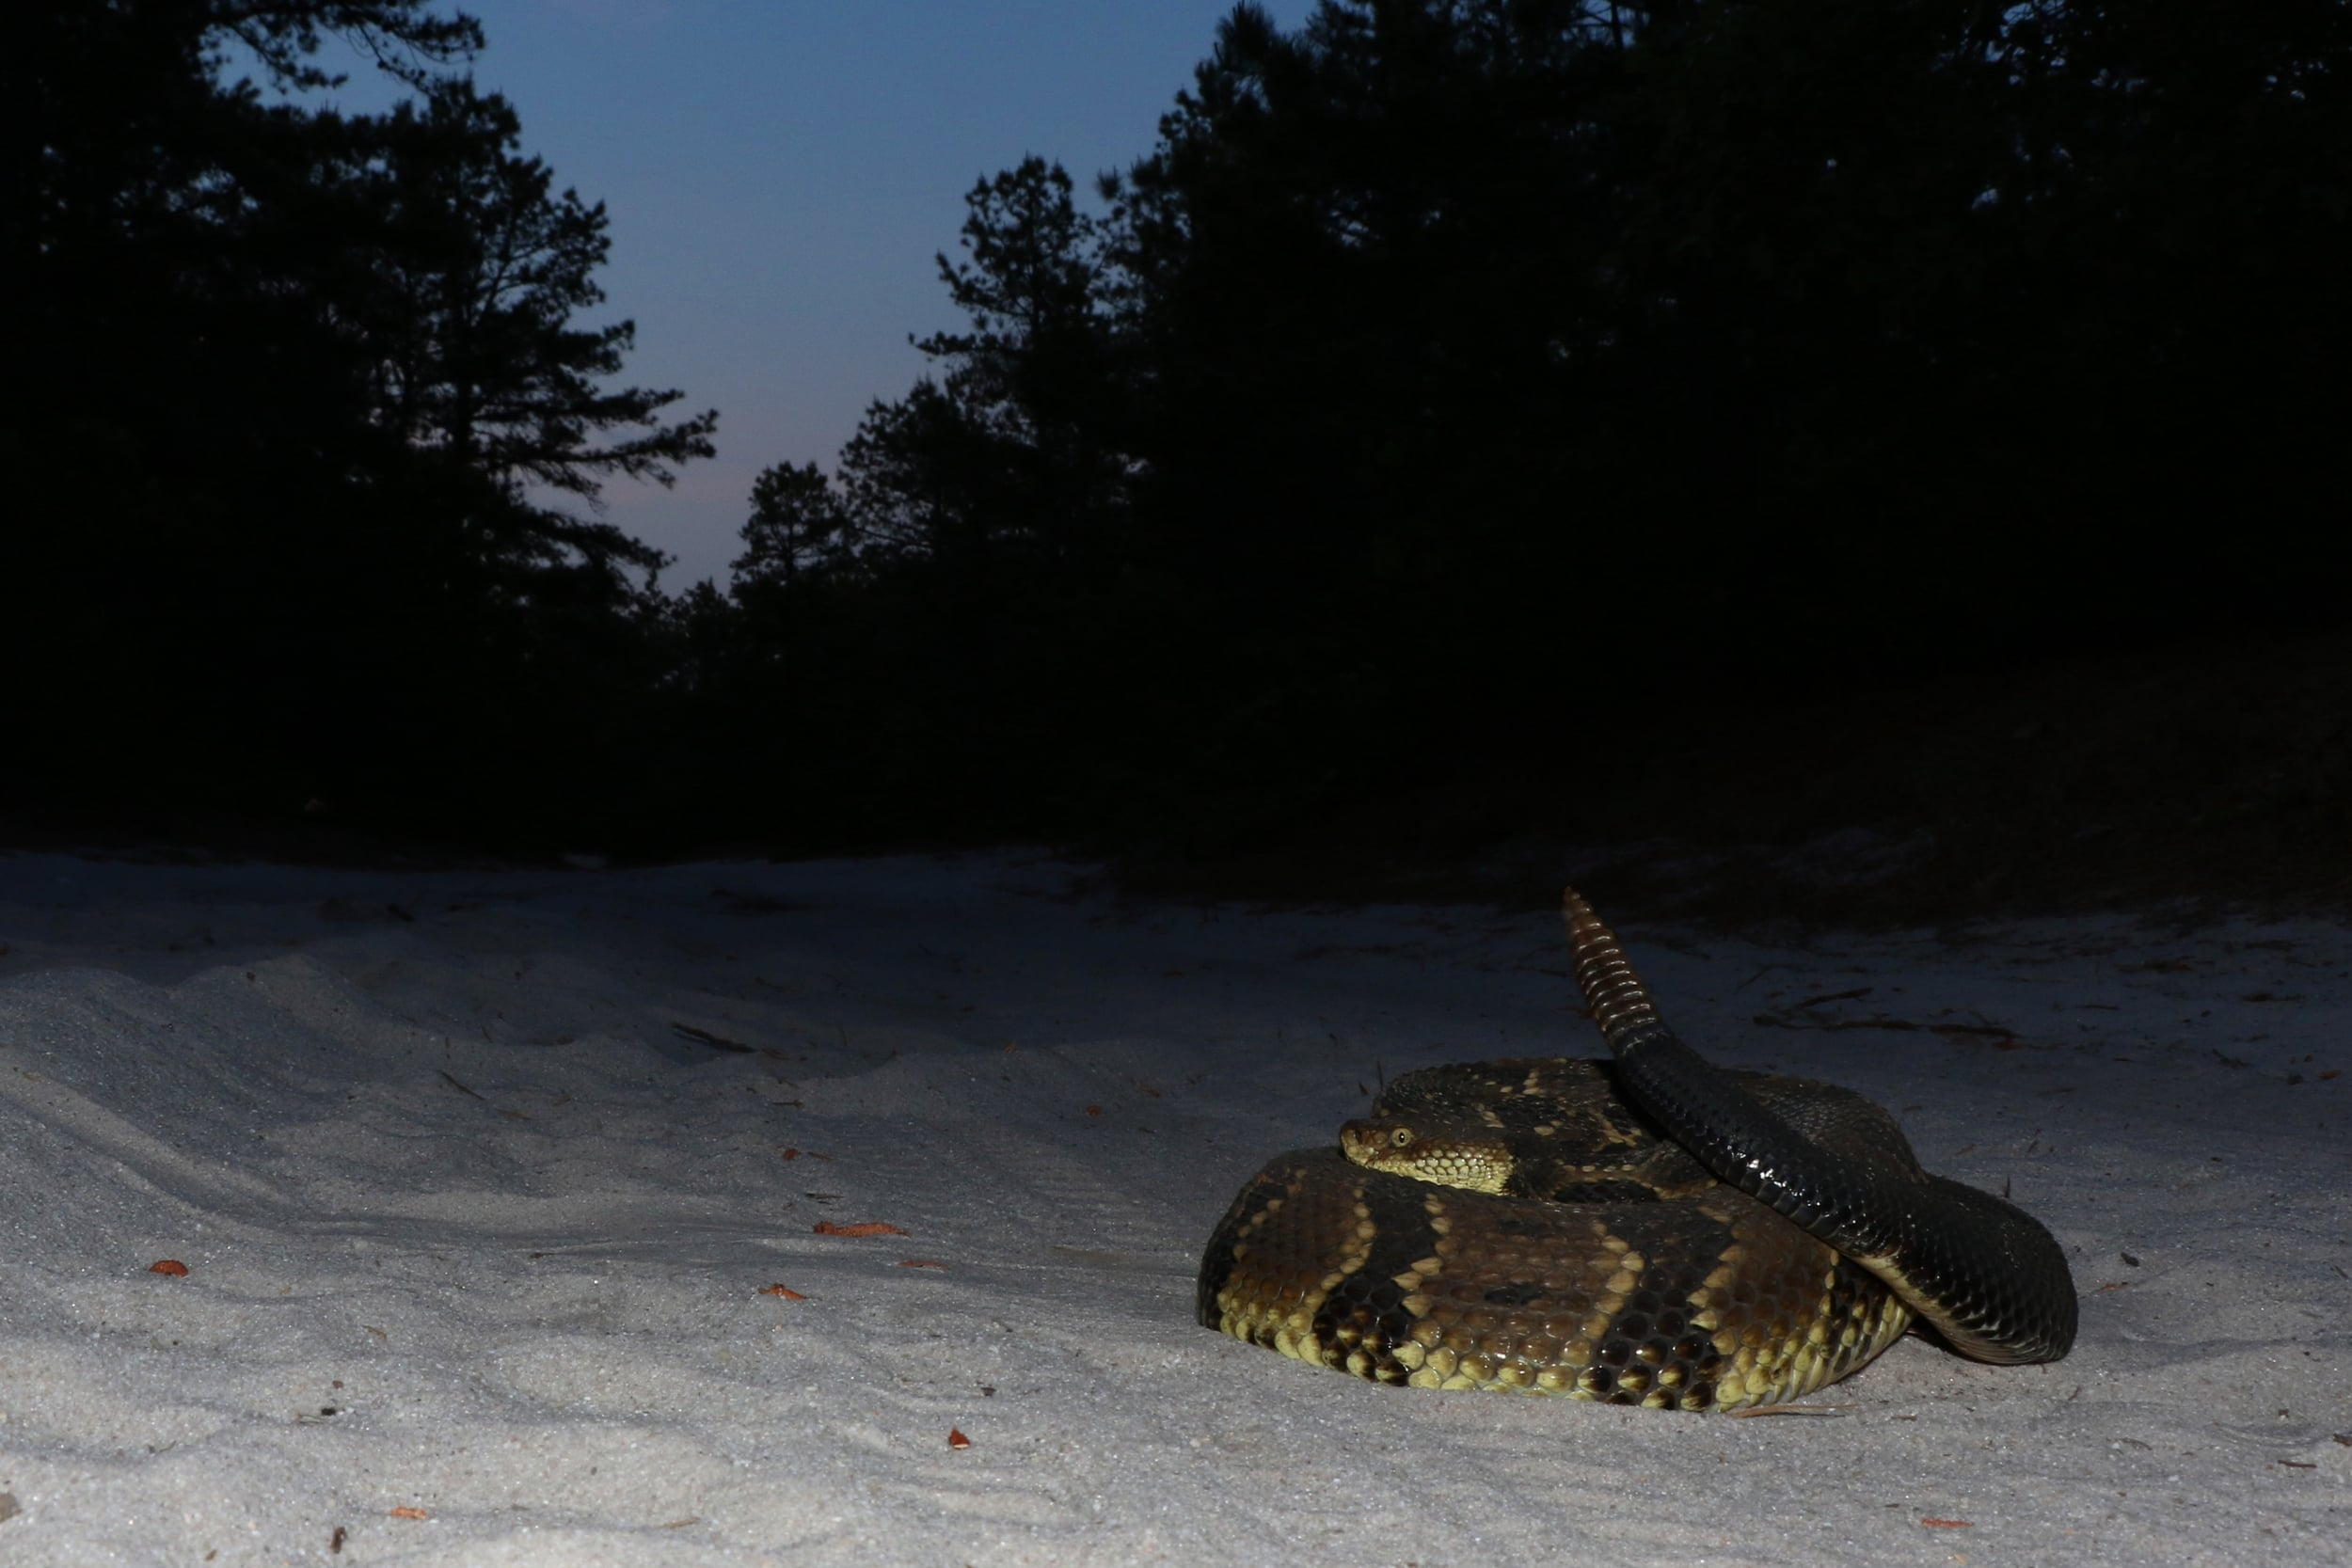 Timber Rattlesnake - This big adult was cruised by some friends and I had happened to be heading in that direction, so they hung out with it for five minutes so I could see her.